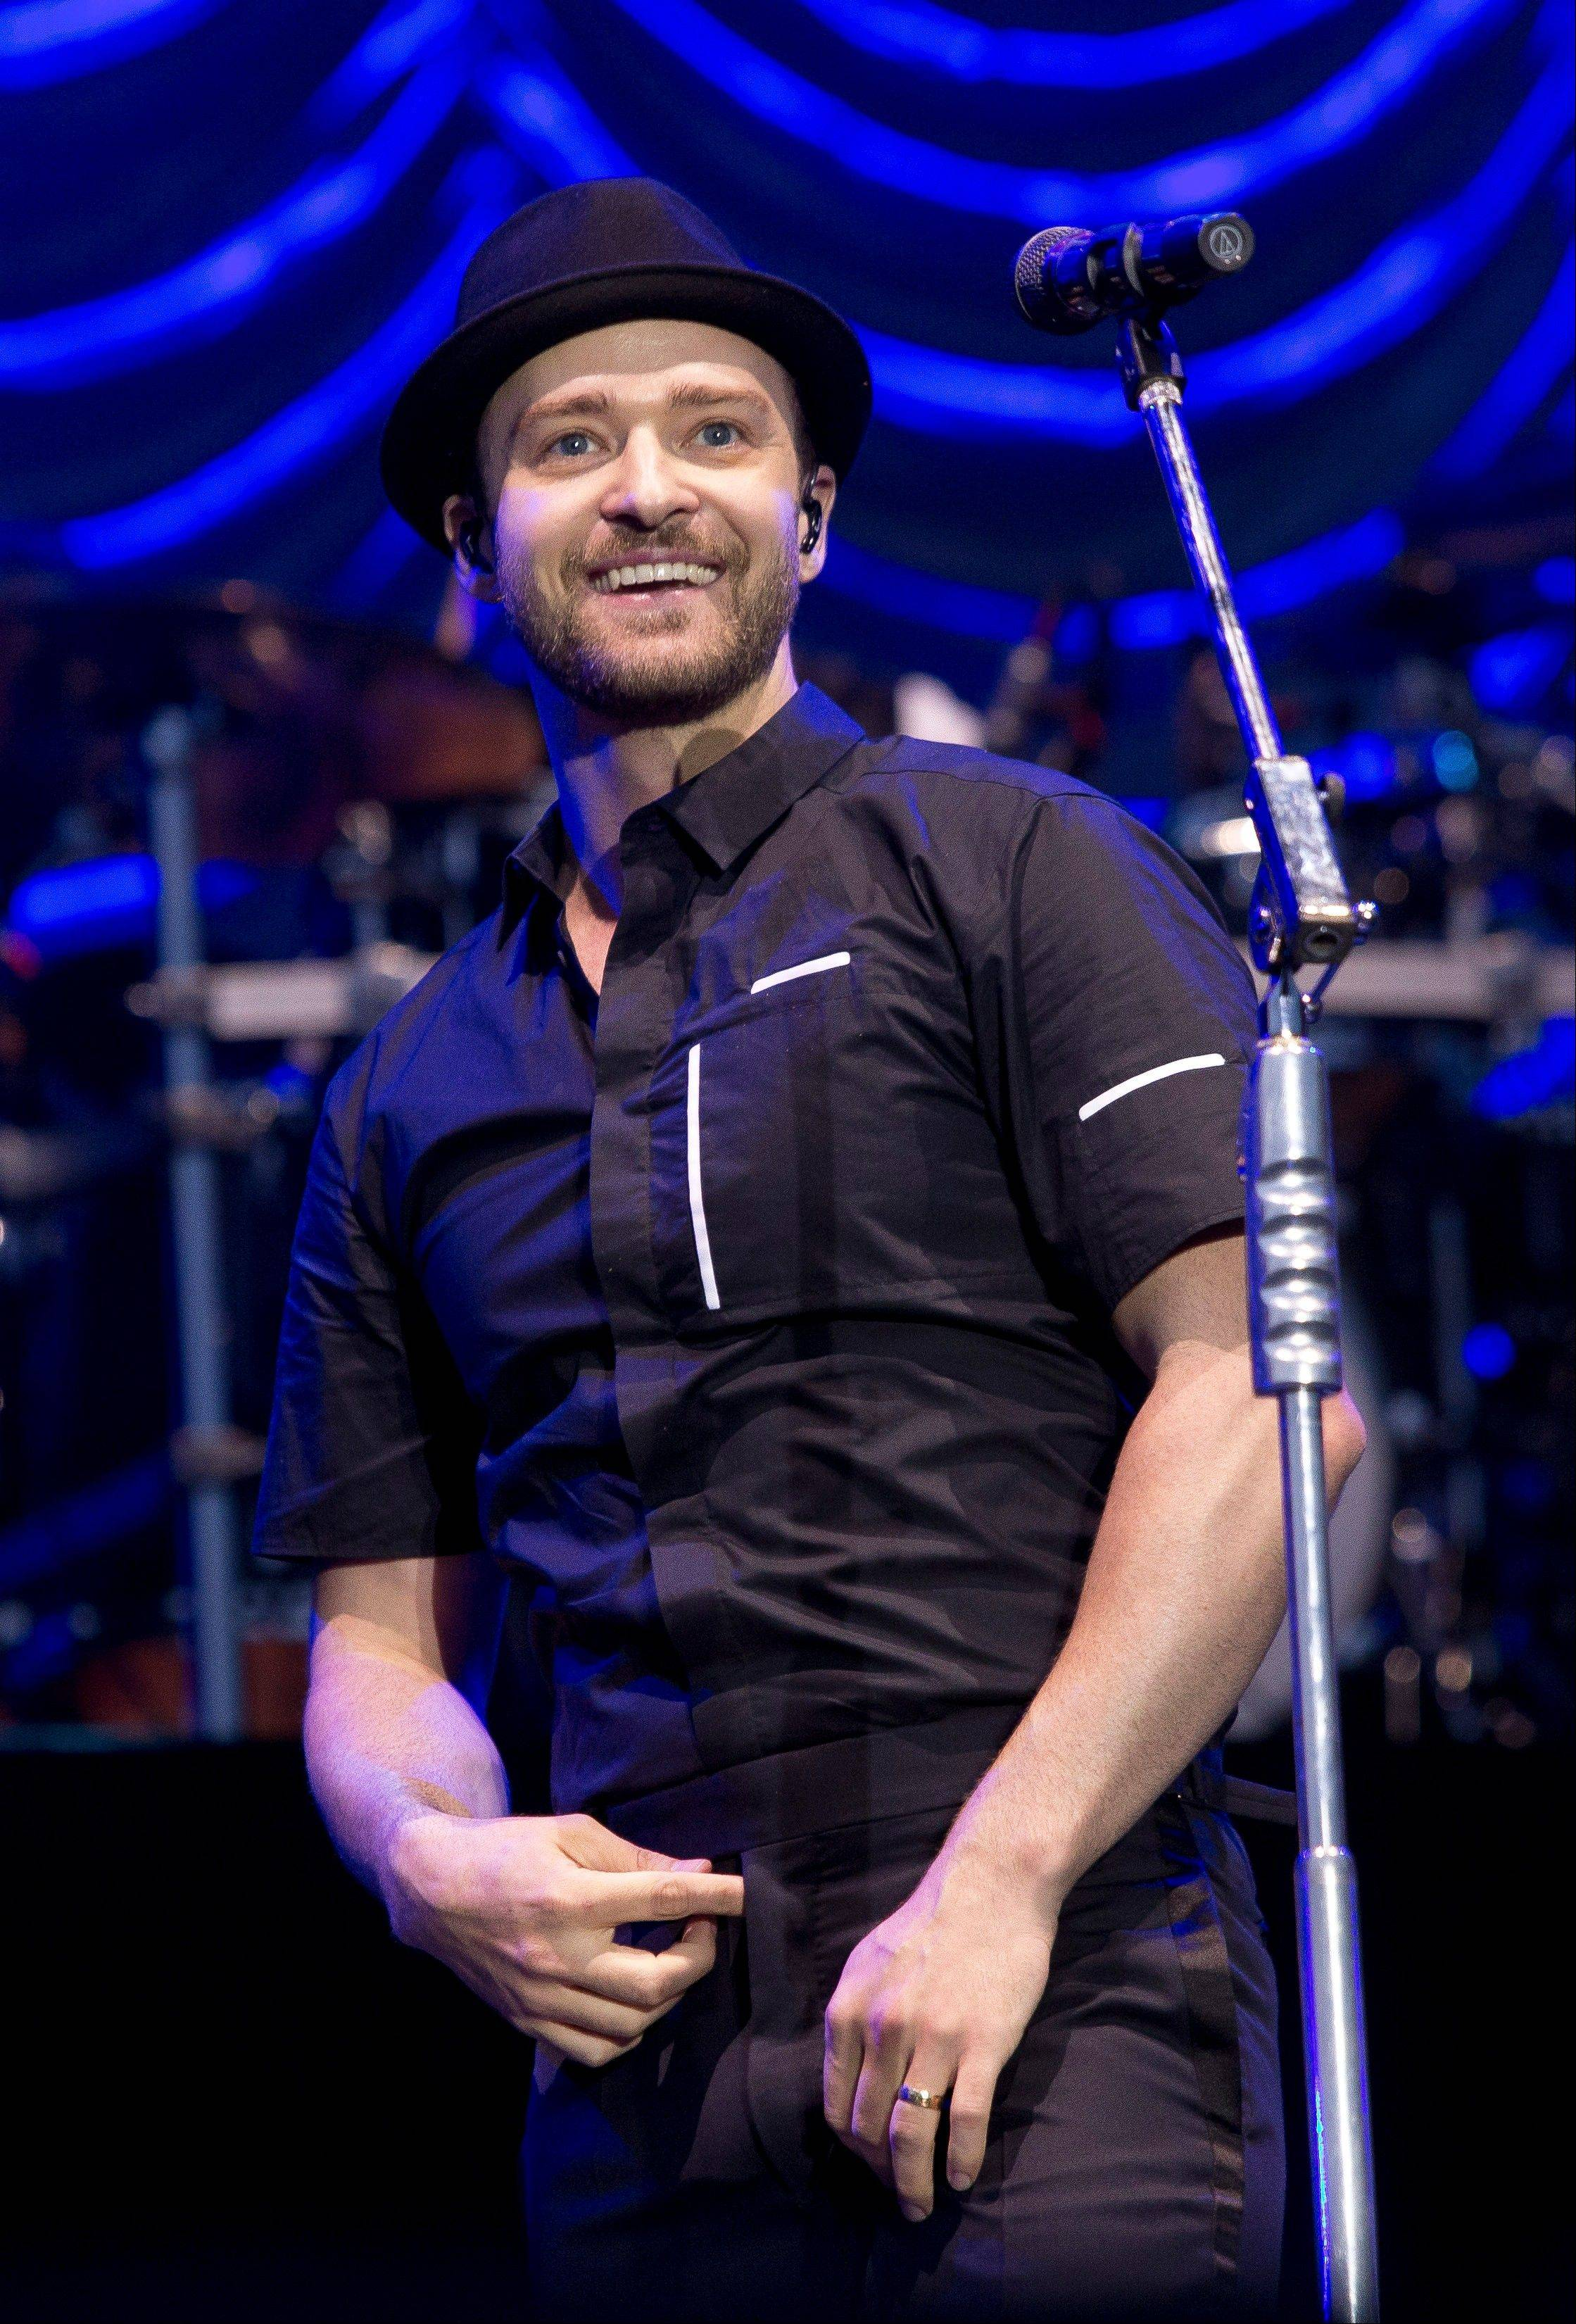 In this July 12, 2013, file photo, Justin Timberlake performs on stage during the Wireless Festival at the Queen Elizabeth Olympic Park in London. This year's MTV Video Music Awards is all about looking forward as artists with some of the fall's most anticipated new music line up to perform as the show makes its first stop in New York's Brooklyn borough. Timberlake and fellow lead nominees Macklemore & Ryan Lewis are scheduled to perform, but that's just the start Sunday night, Aug. 25, 2013, at the Barclays Center, where the show kicks off at 9 p.m. EDT.